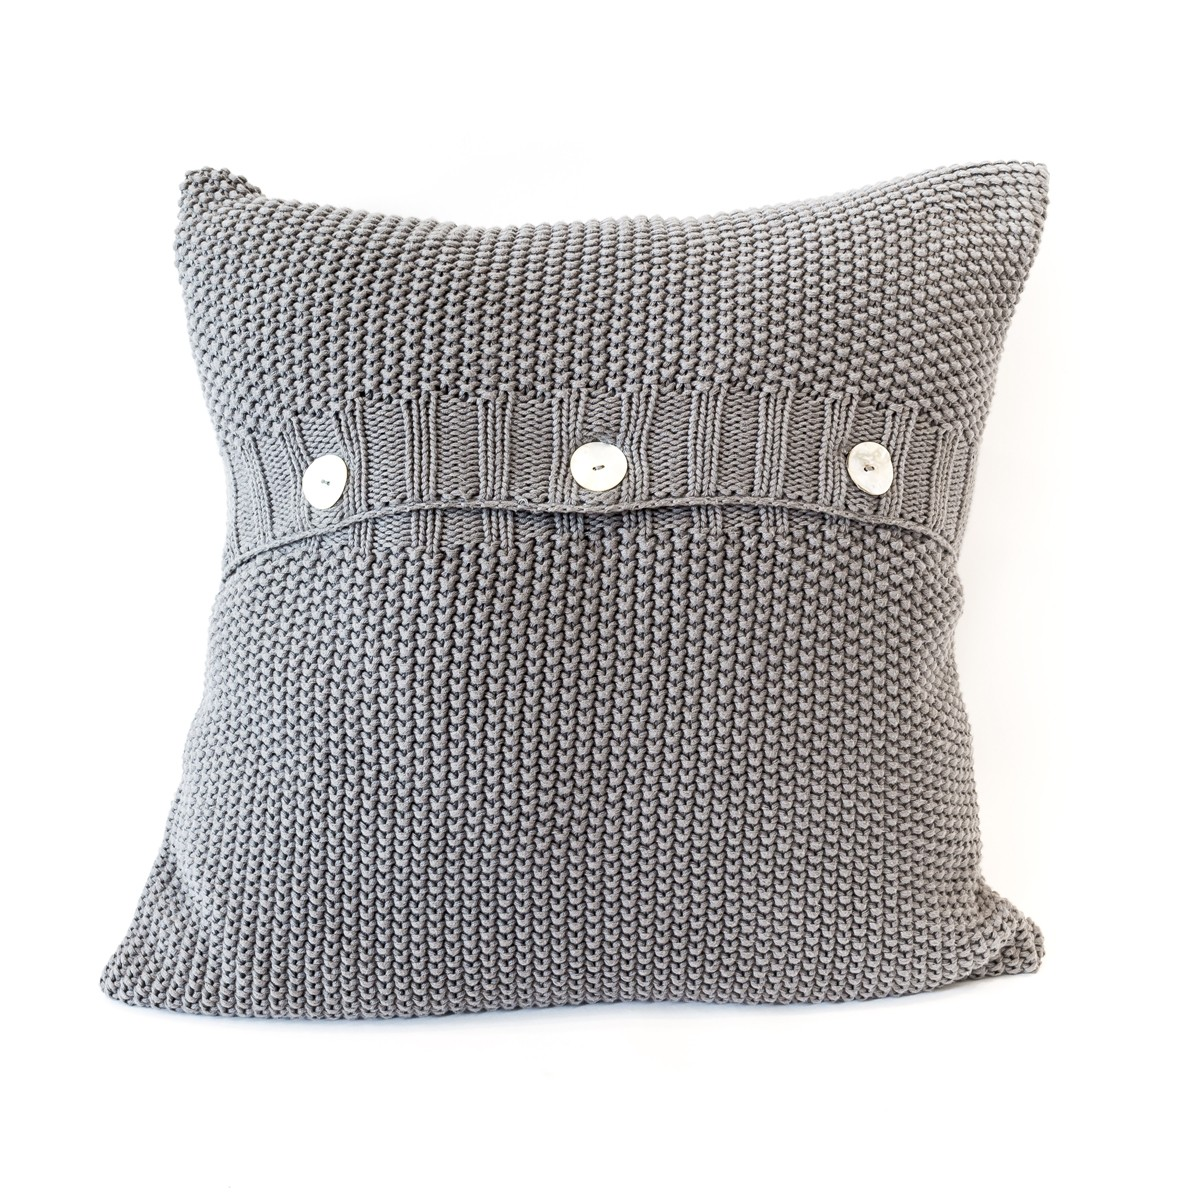 Charcoal Moss Stitch Cushion Cover Front